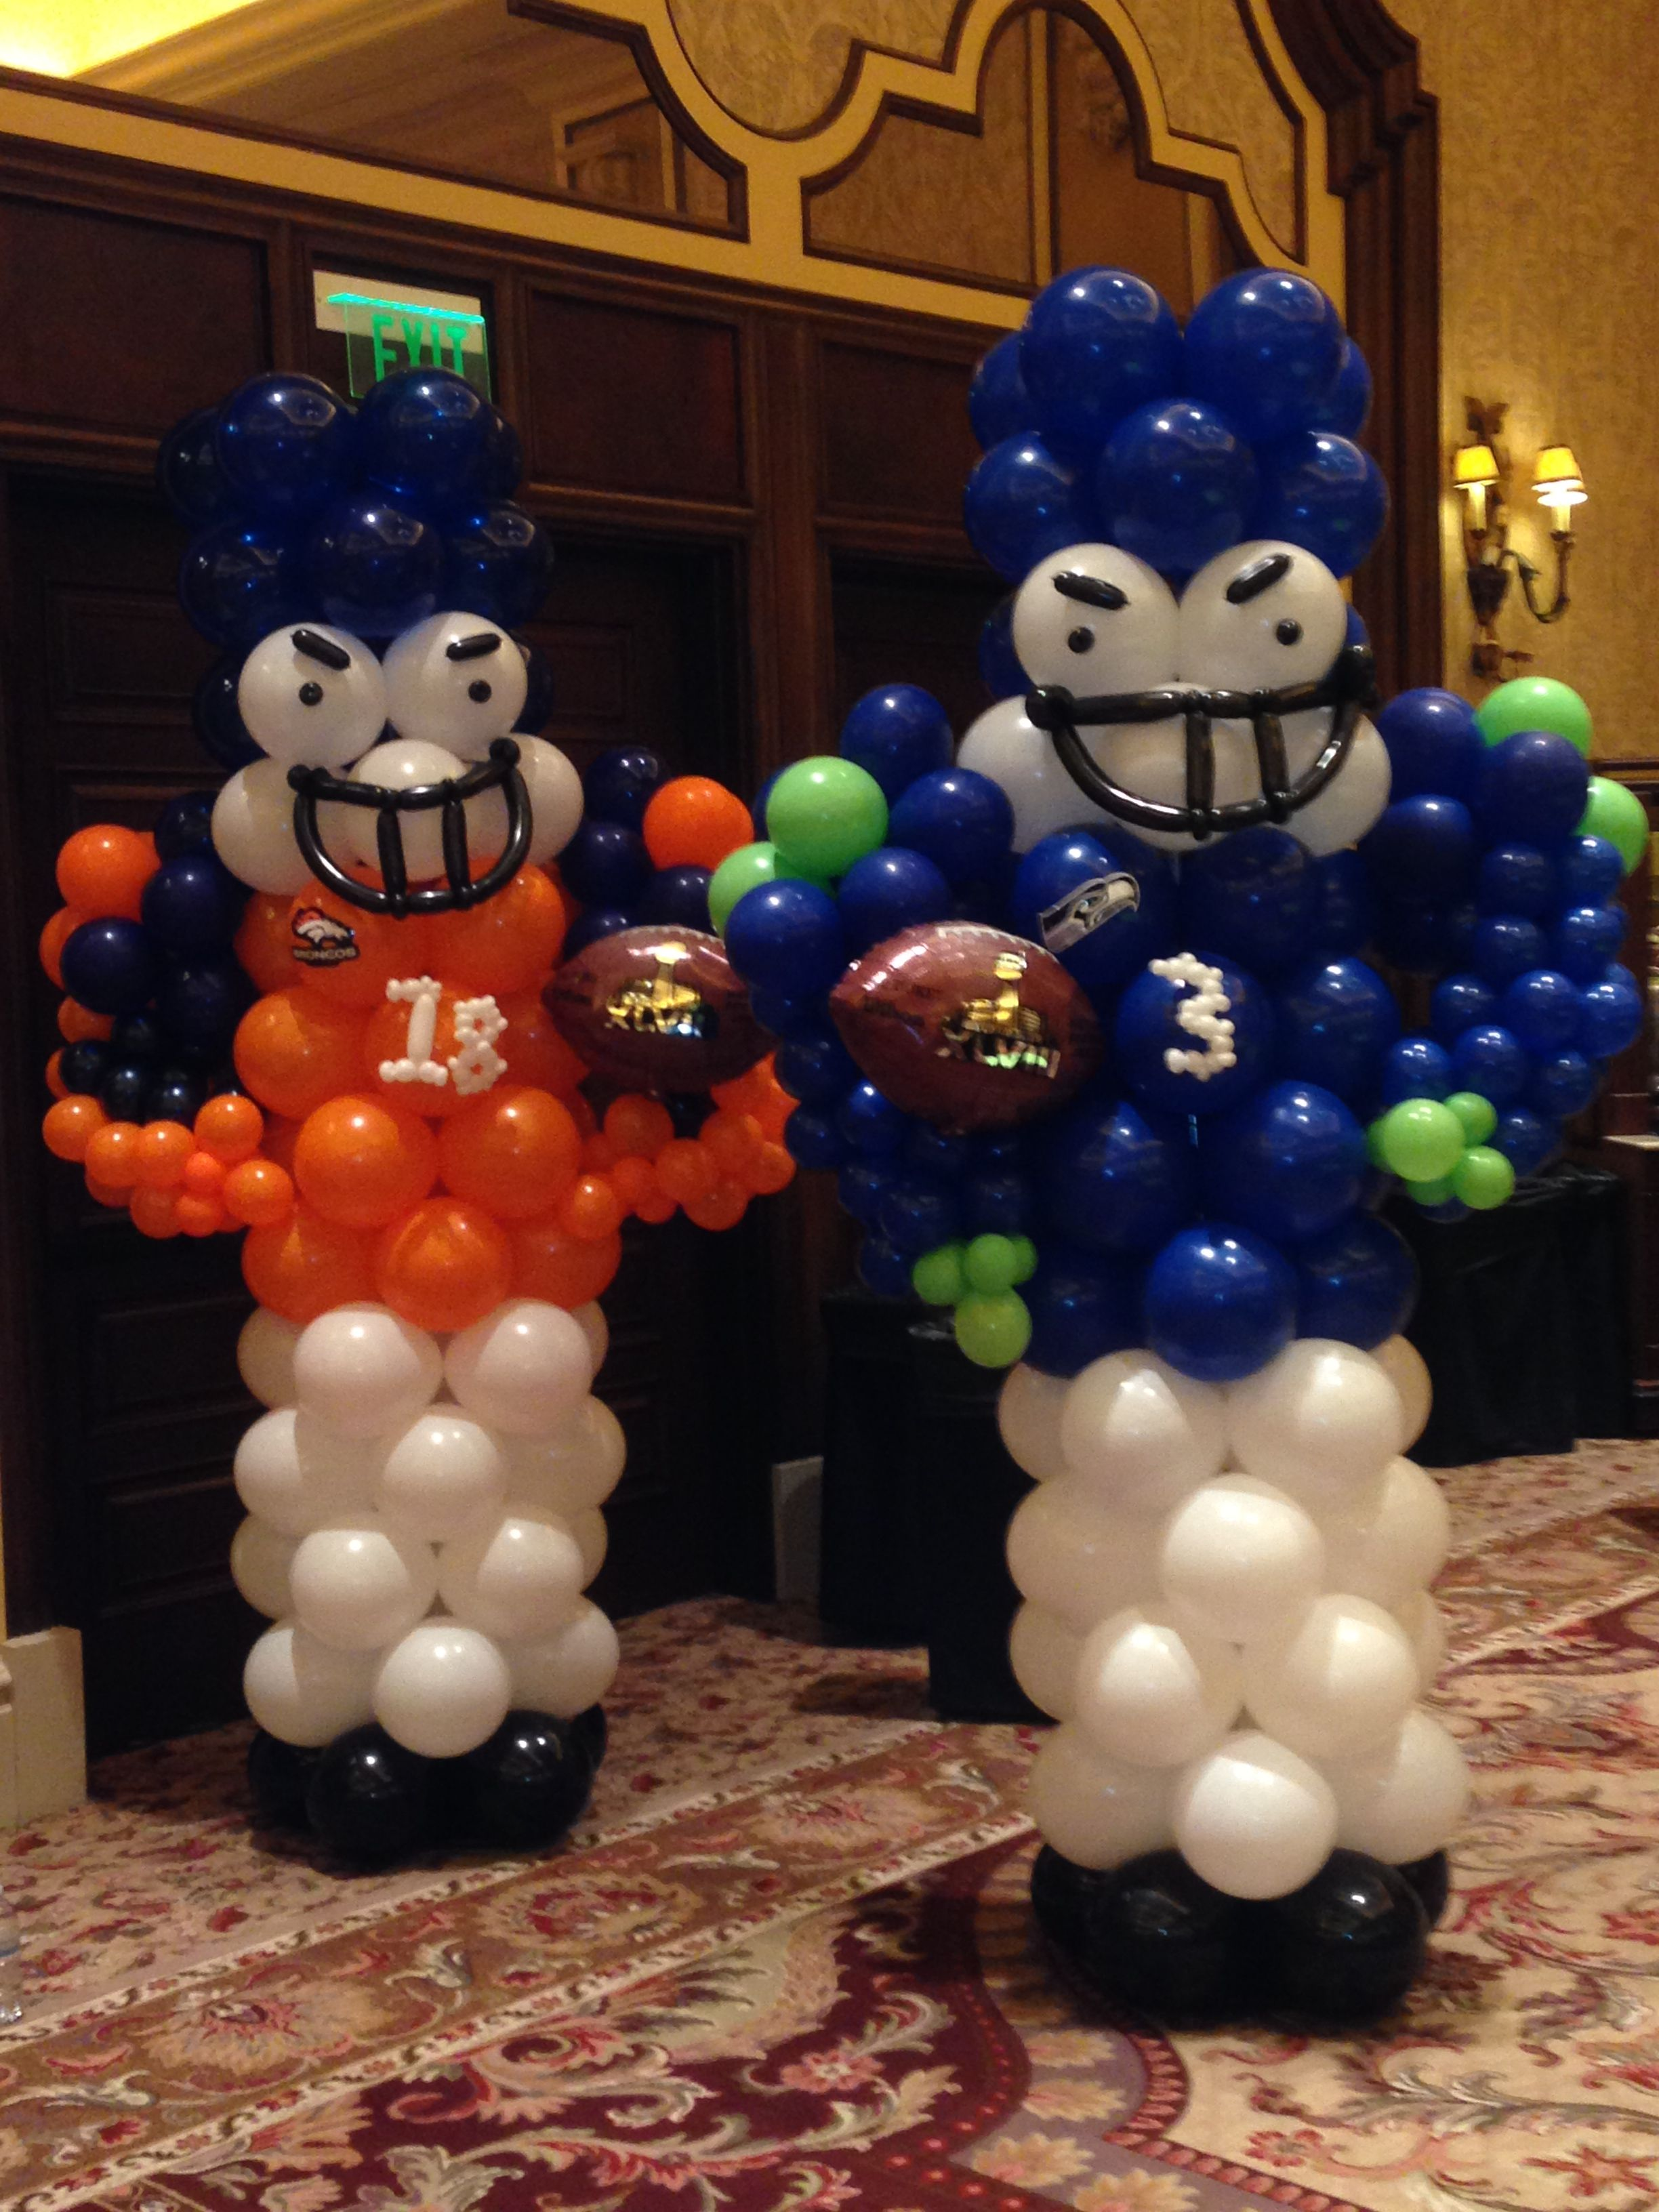 Super Bowl Football Players 2014 Balloon Sculptures Created By Sin City Balloons Las Vegas